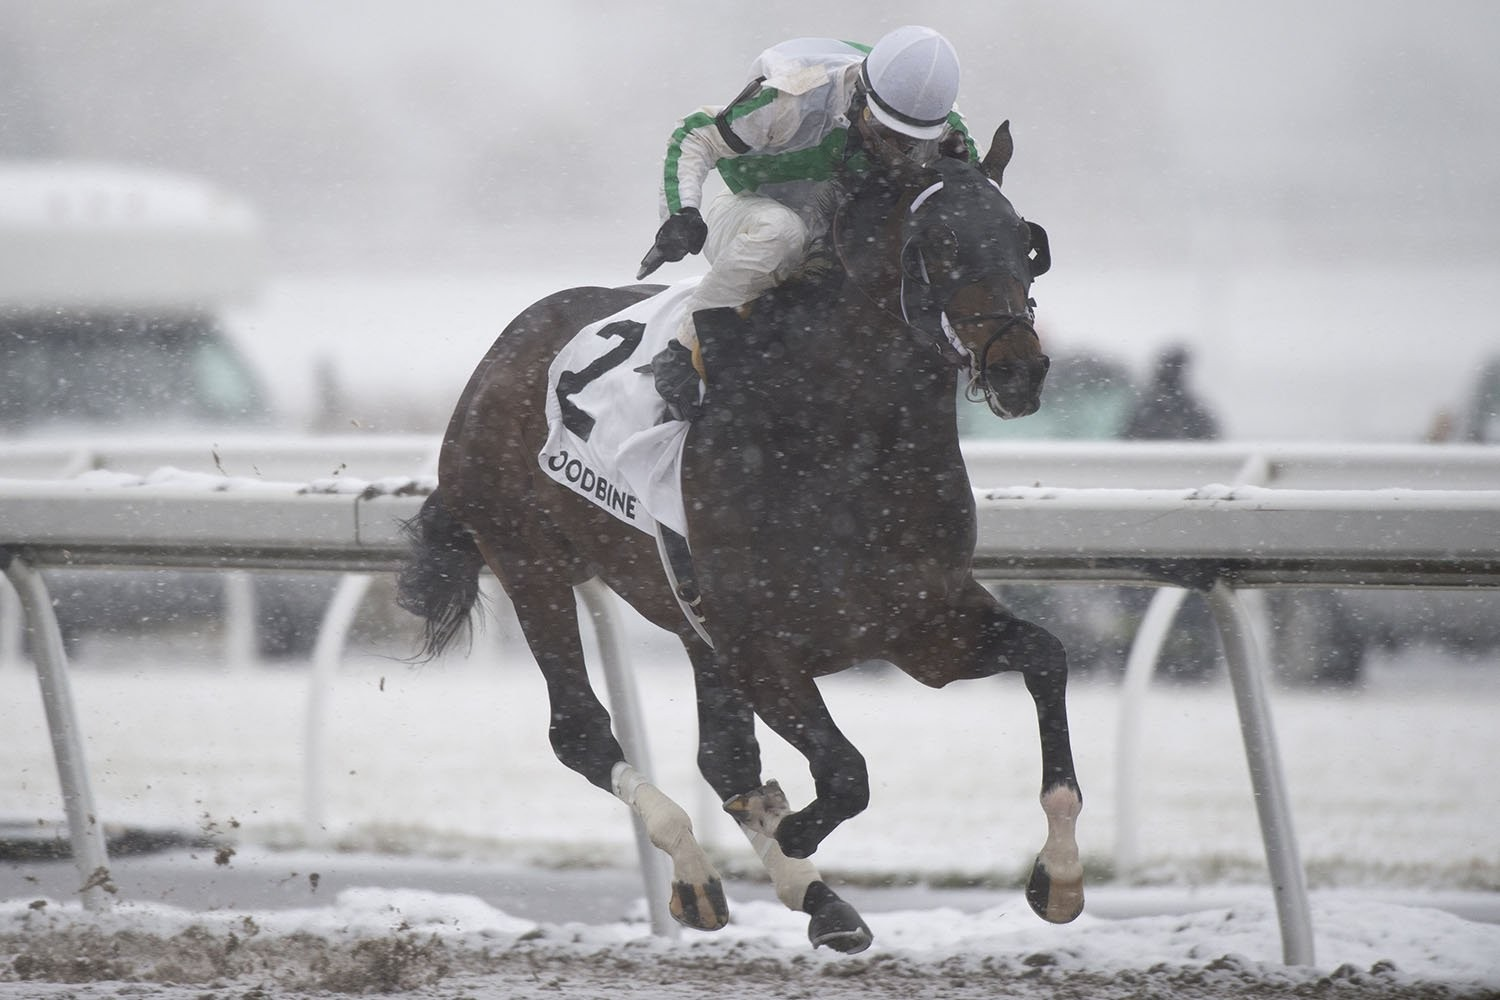 Thumbnail for Final Day of 2019 Woodbine Season Today: Eurico rides into Sunset, Tiller goes for 2000